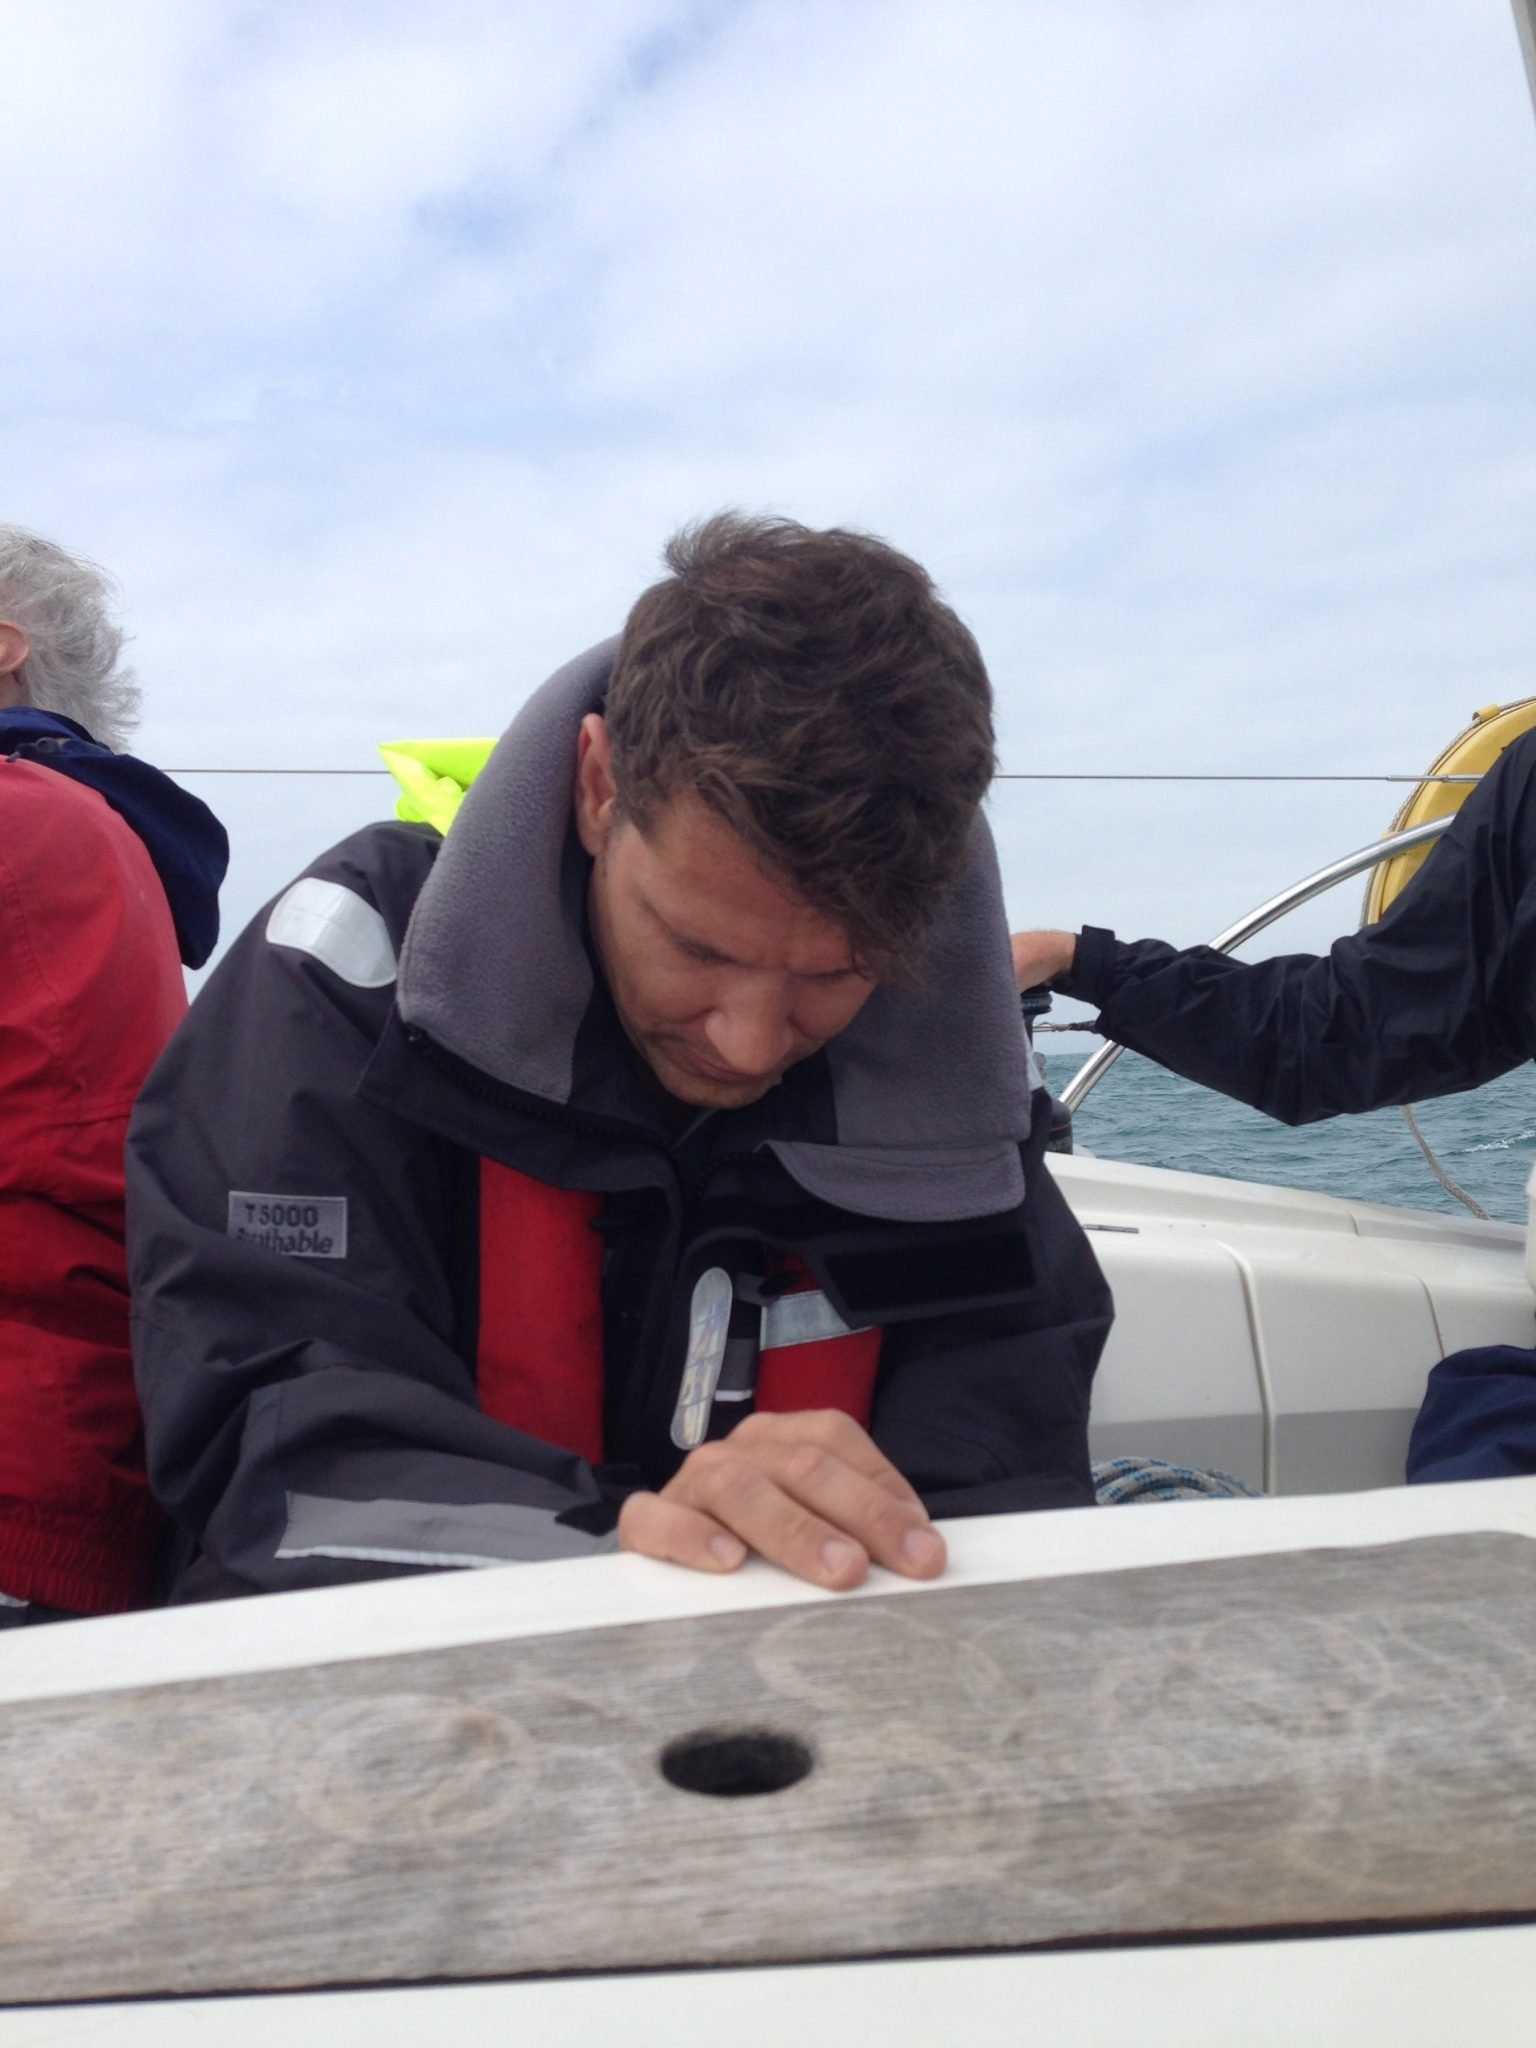 Seasickness – how can you prevent it?